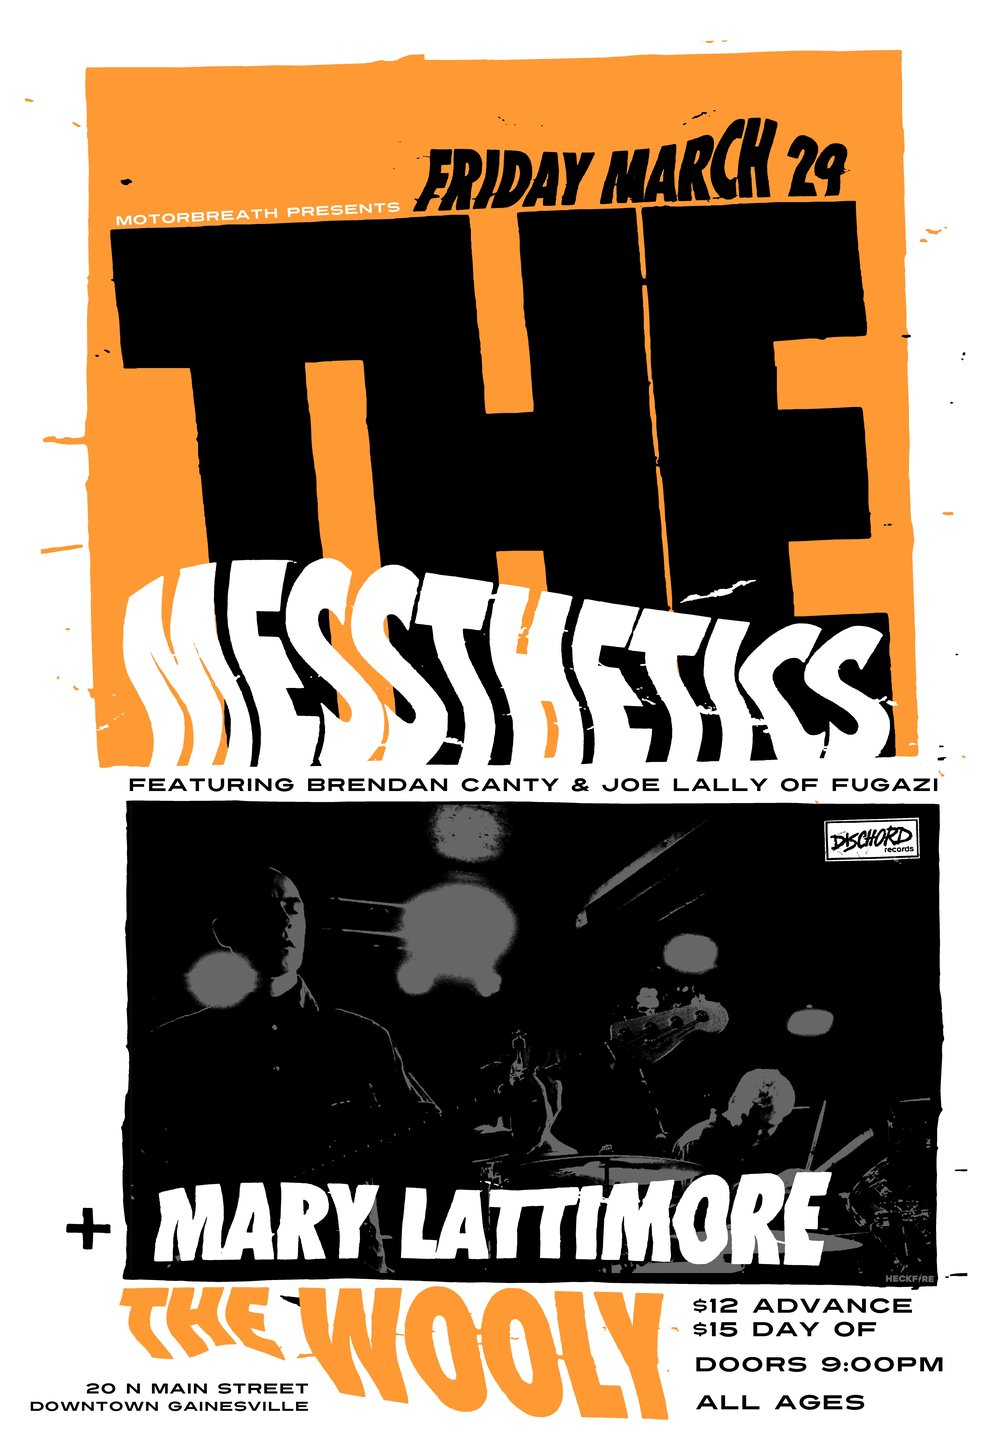 Friday, March 29  Motorbreath Presents   The Messthetics  (Dischord Rec, featuring members of Fugazi)  Mary Lattimore / Harpist  + TBA  at The Wooly: 20 N Main Street, Gainesville FL 32601  Doors at 9pm, $12adv / $14dos (All Ages Show)   Buy Tickets   Tickets available at Hear Again & Arrow's Aim Rec  The last time drummer Brendan Canty and bassist Joe Lally were in a band together, they were the rhythmic architects for Fugazi, an organization whose decade and a half of disciplined progressivism provided a necessary bridge between the zenith of late-punk expression and everything alternative in rock that followed. In 2016, the two were enlisted by guitarist Anthony Pirog in a conspiracy to subvert and reimagine the power trio, bringing fully into the 21st Century a form that may have reached near perfection with Hendrix's Band of Gypsys on the very first day of the 1970s. With a self-titled recording scheduled for release in the Spring of 2018 on Dischord, the Messthetics will widen the reach of a decisive instrumental music that so far, they have only shared with a privileged handful of east coast and southern audiences. Across its eight original compositions and one cover, Anthony guides the sound through complex changes and harmonic densities that might compound, but never confound or muddy its connection with the listener's body. Recorded by Brendan in their practice space, the group's debut gives Anthony ample opportunities to swap guitar textures and styles as freely as an octopus changes patterns. Brendan's kit has a big heavy bell that he brought back from the Fugazi days. He maneuvers through this rhythmically shifty music with a fluid briskness that is periodically disrupted by the clang of his bell. Joe spent 8 years in Italy, among other things, woodshedding on eastern rhythms counted in 7 and 13, perfect preparation for the oddly-metered work of the Messthetics. He brings a rock-solid foundation to the groove at the same time playing a harmonic compleme